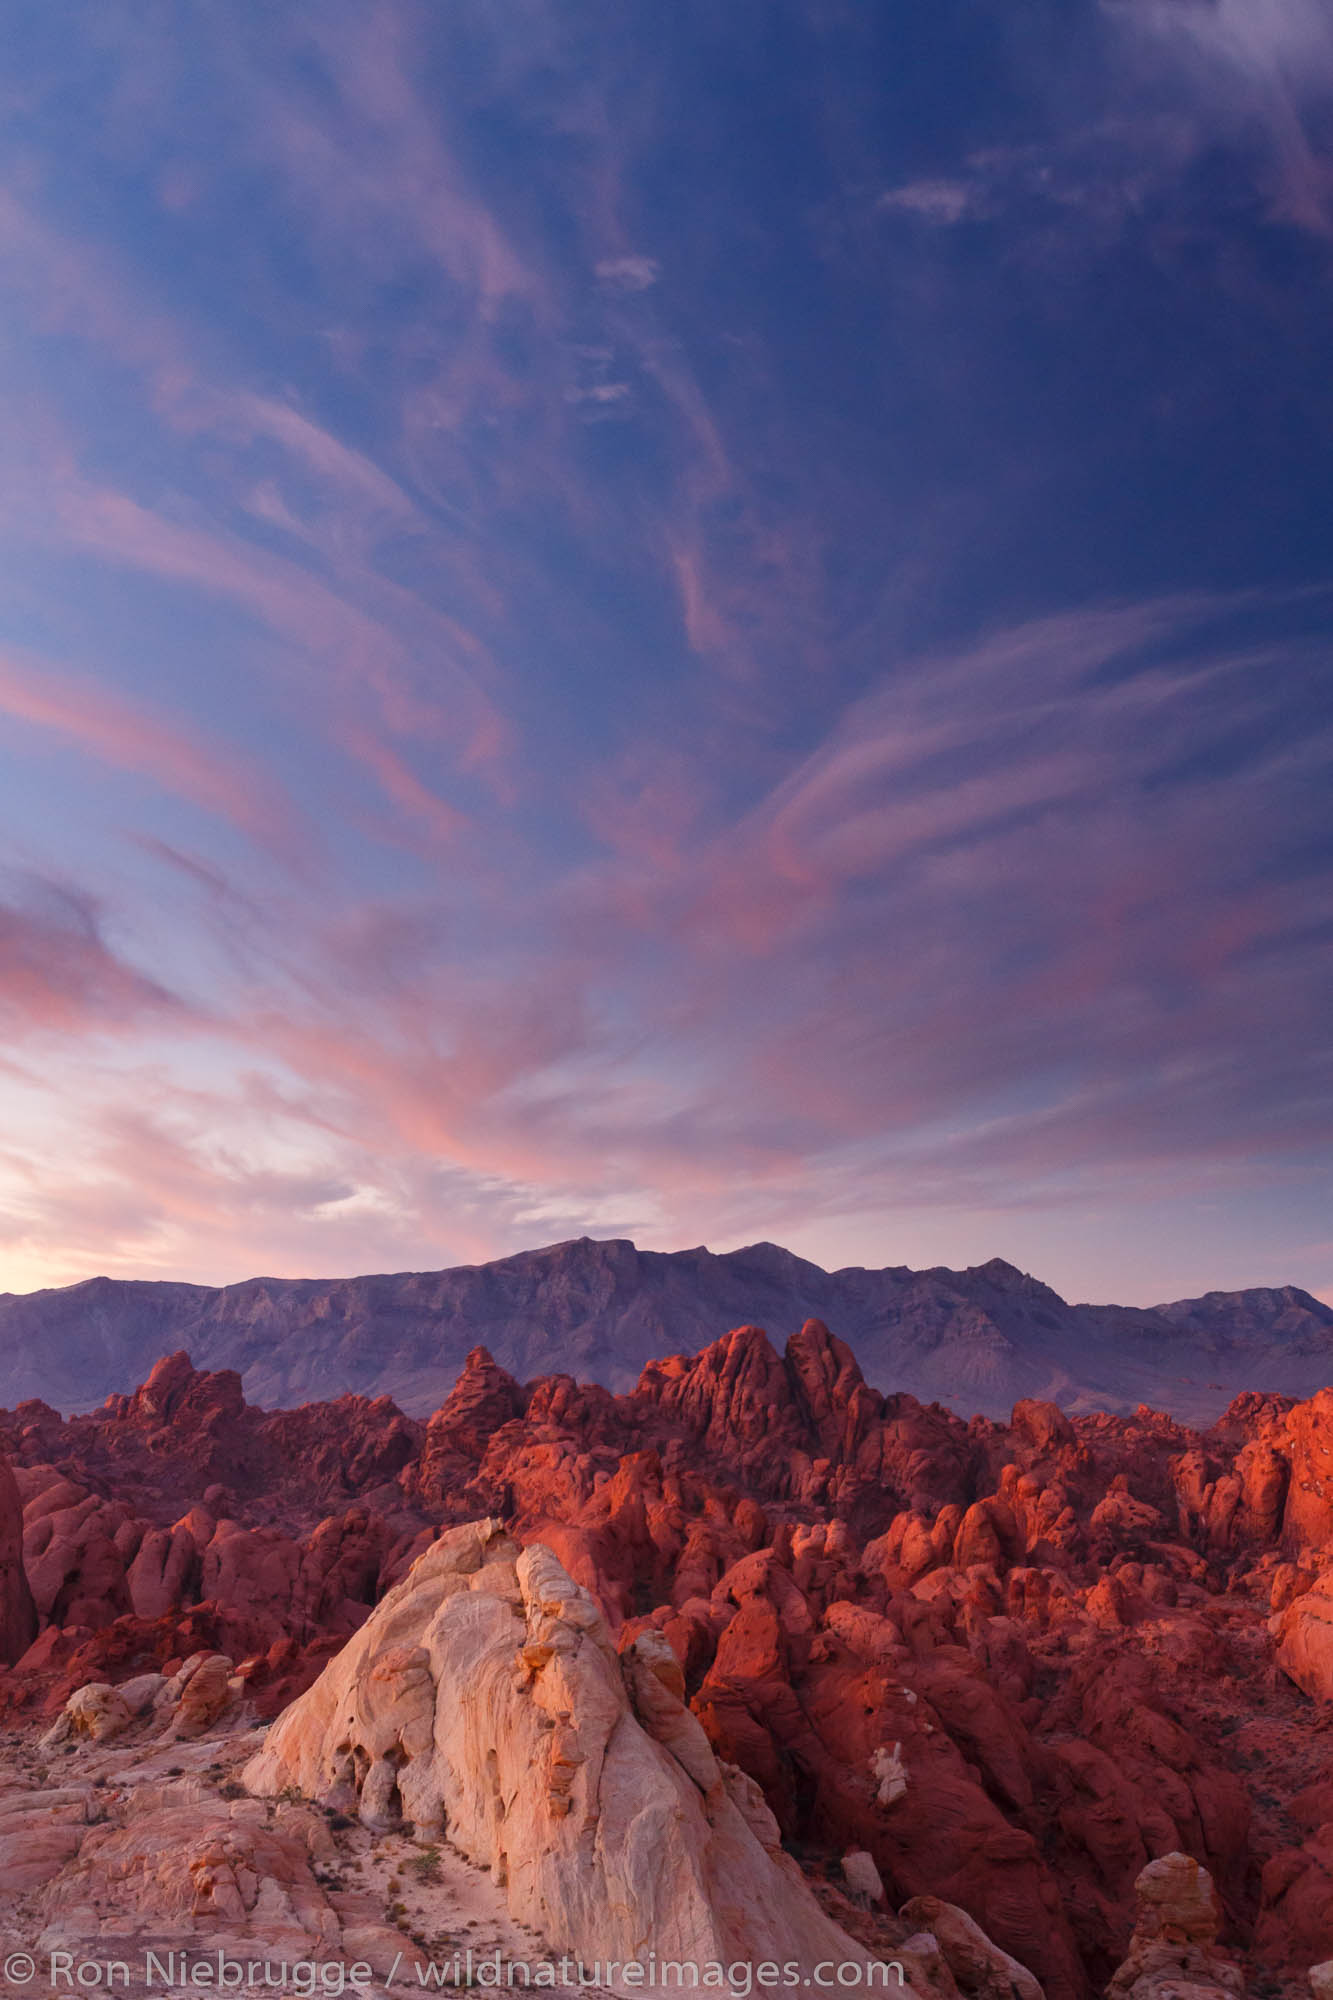 Sunrise over Silica Dome-Fire Canyon, Valley of Fire State Park, about 1 hour from Las Vegas, Nevada